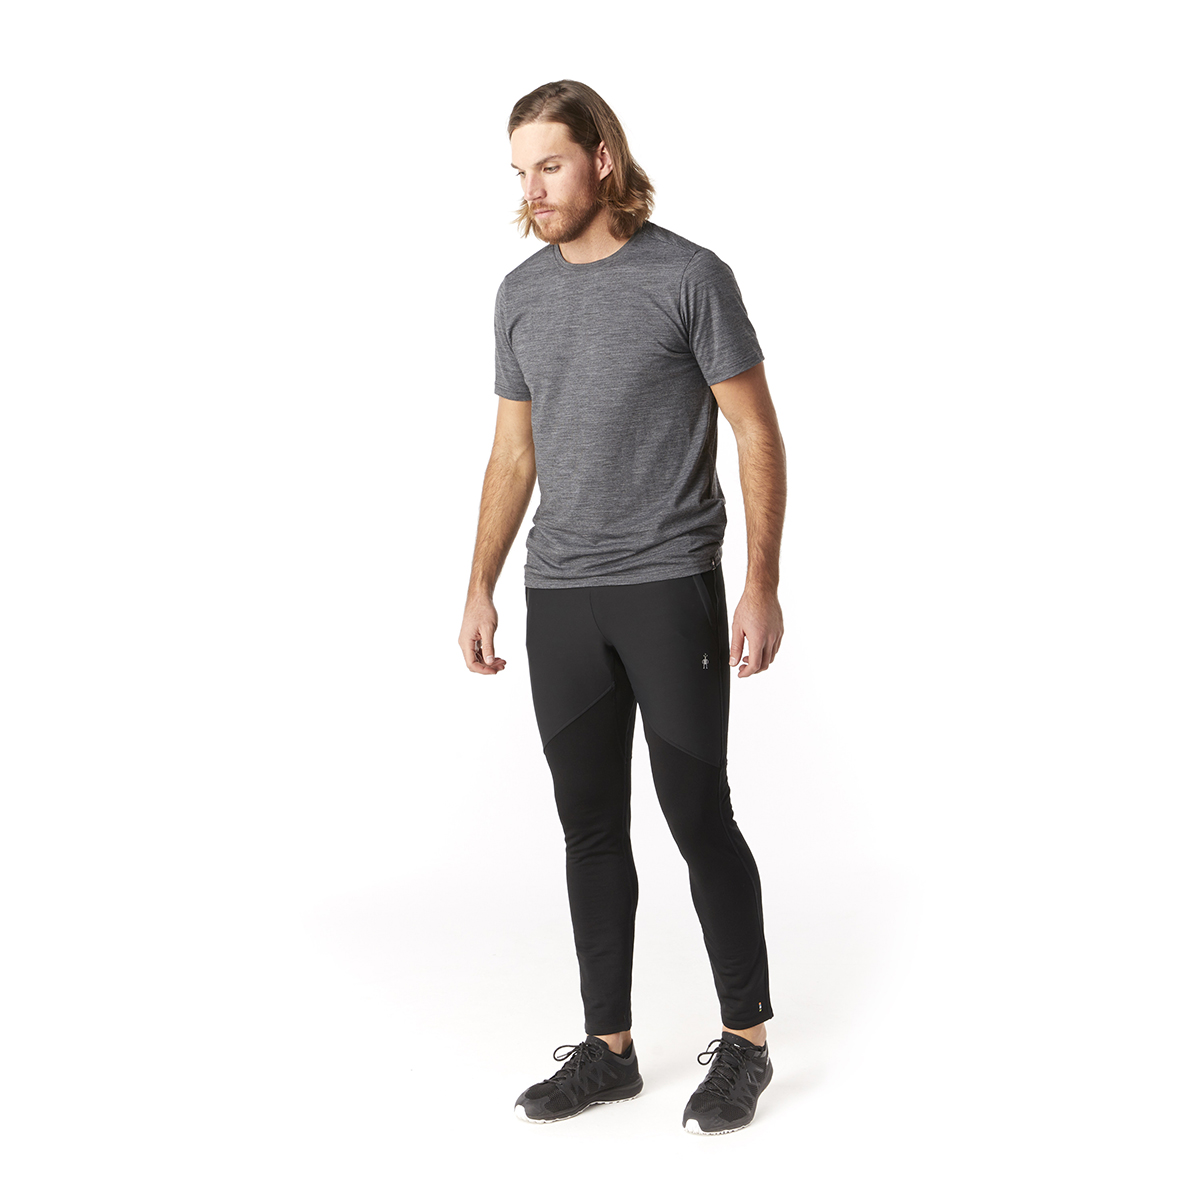 Smartwool Men's Merino Sport Fleece Pants